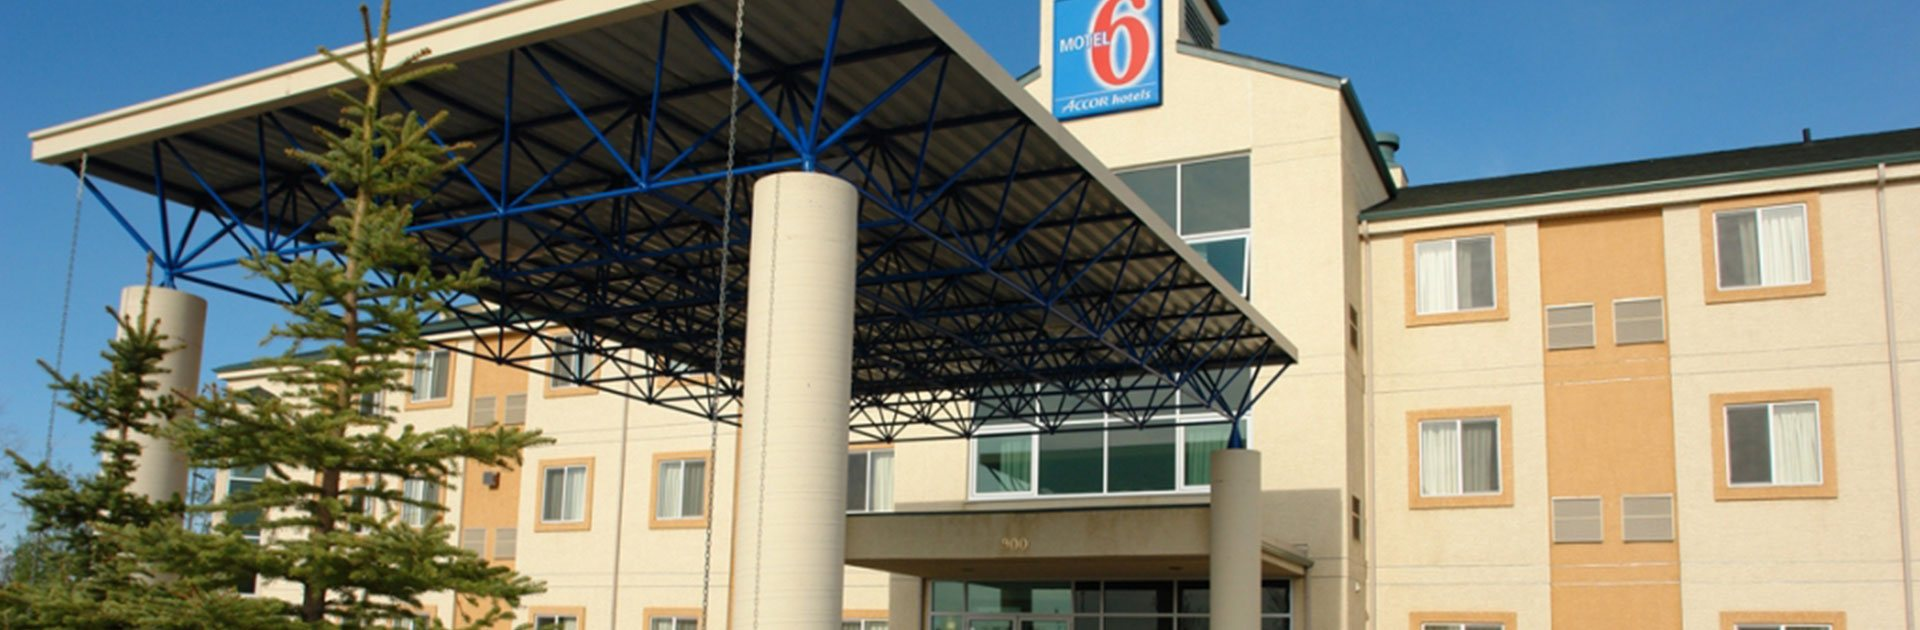 A view of the underside of the steel and concrete portico of d3h Motel 6 in Red Deer, Alberta, covering over the entrance to the three storey building.  The corporate logo (MOTEL in white letter typeset with an oversized 6 in red against a blue background), used as signage, is placed atop the summit of the ivory beige and amber orange two-tone motel.